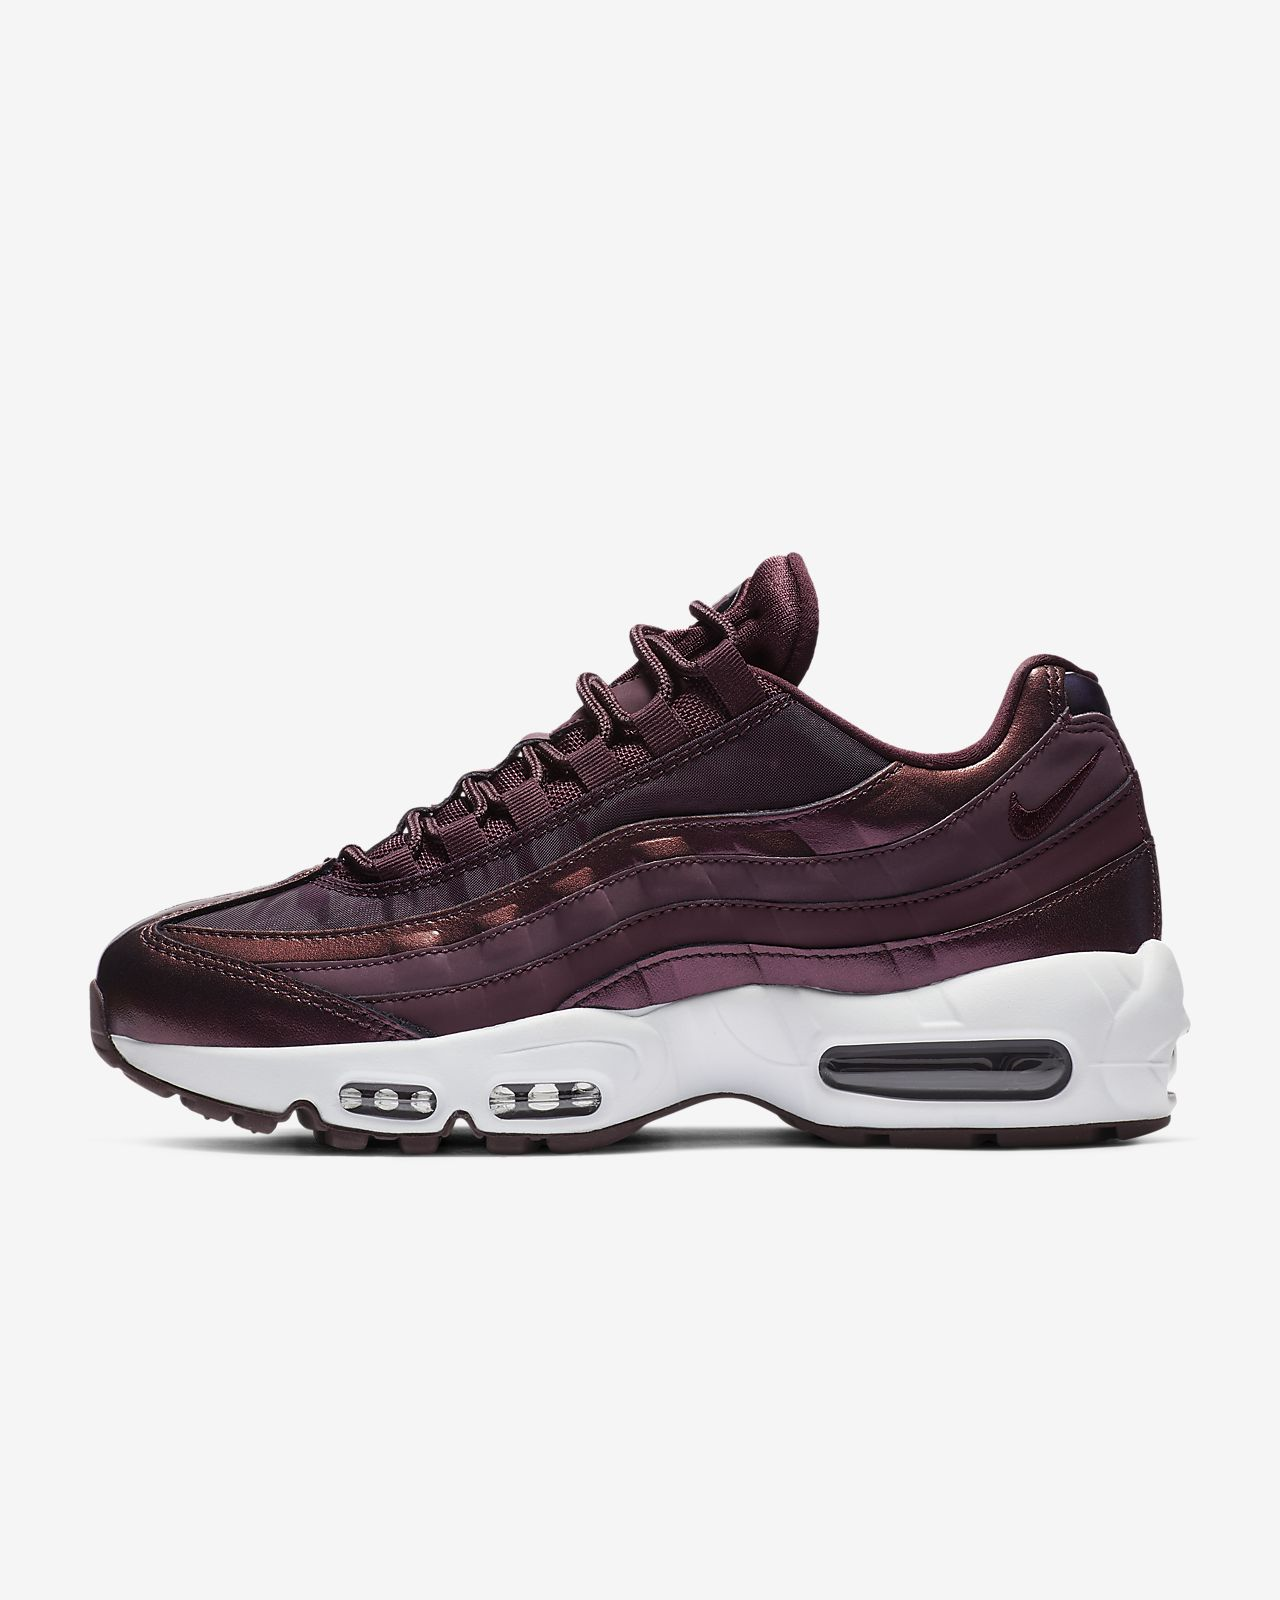 finest selection 3df3f 85c7c ... Chaussure Nike Air Max 95 Lux pour Femme